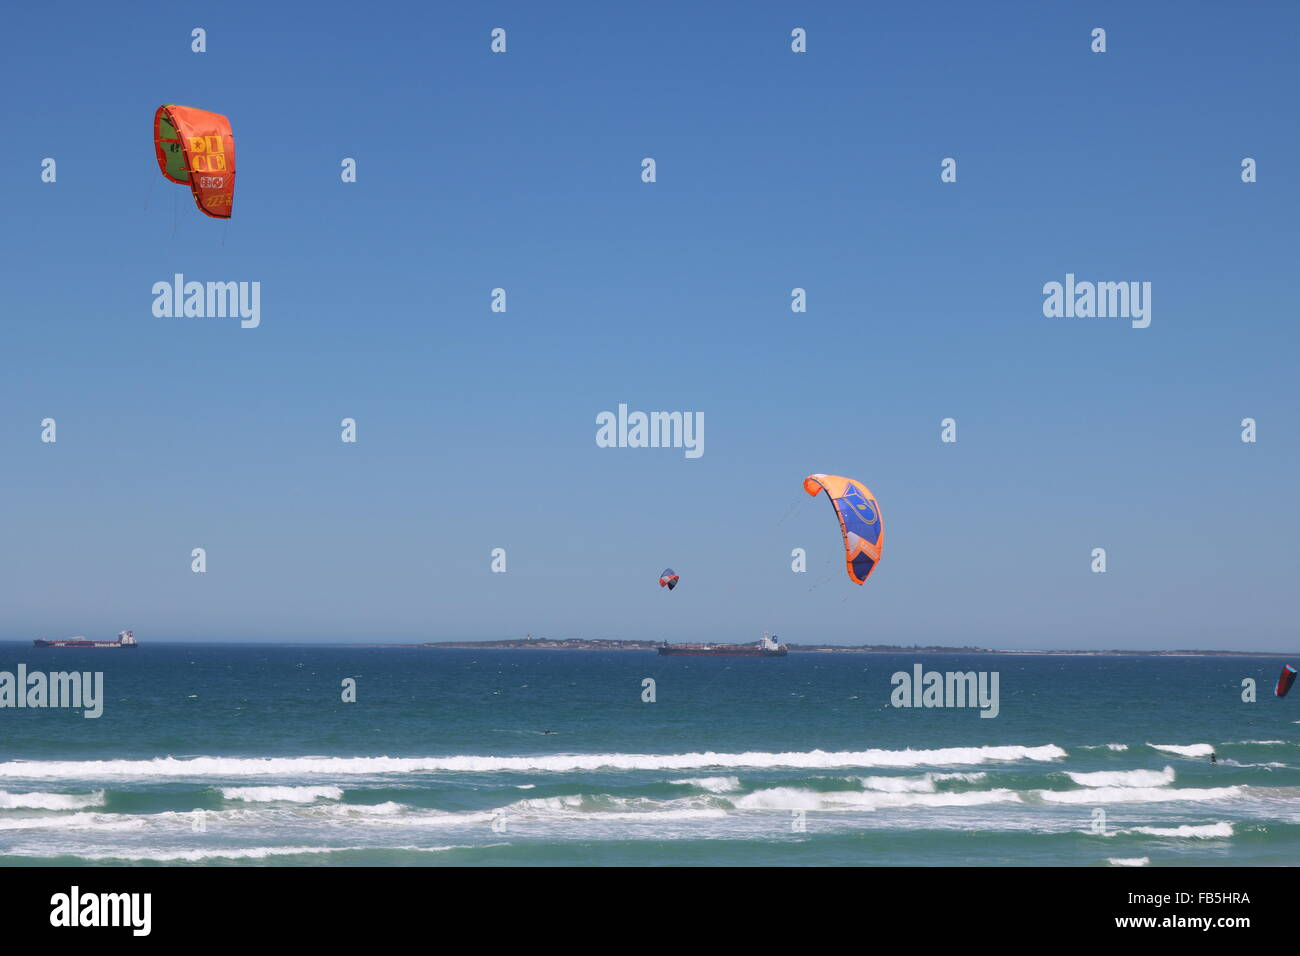 Kitesurfers at Bloubergstrand, Cape Town with Robben Island in the background - Stock Image